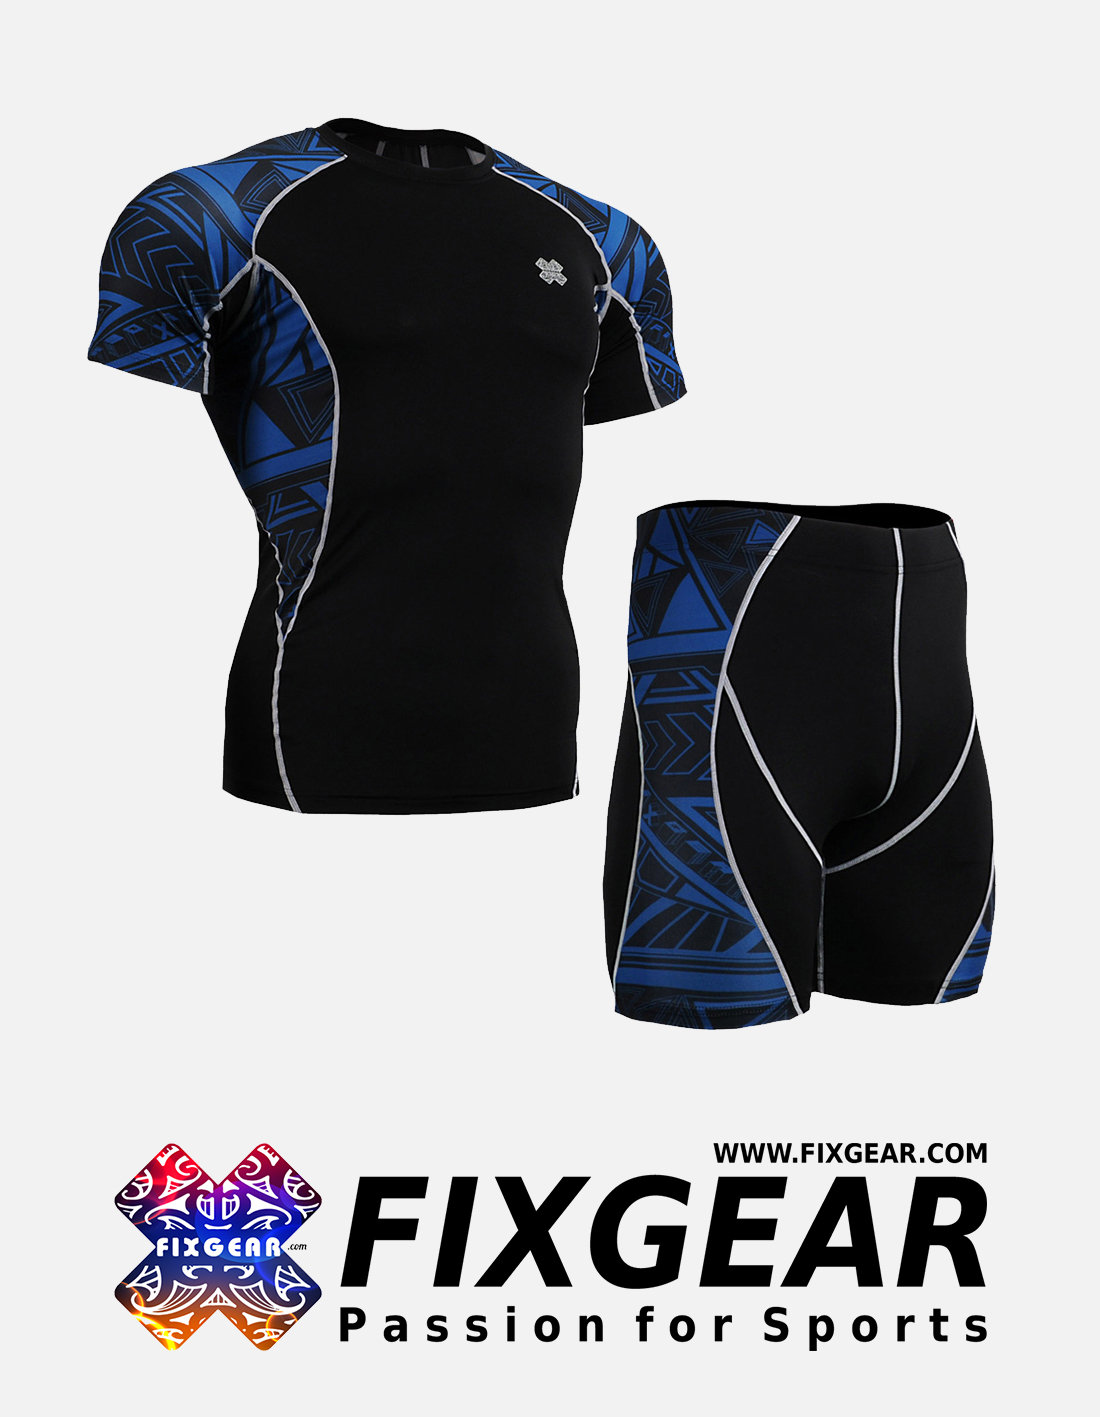 FIXGEAR C2S-P2S-B1 Set Compression Base Layer Shirt & Compression Drawer Shorts